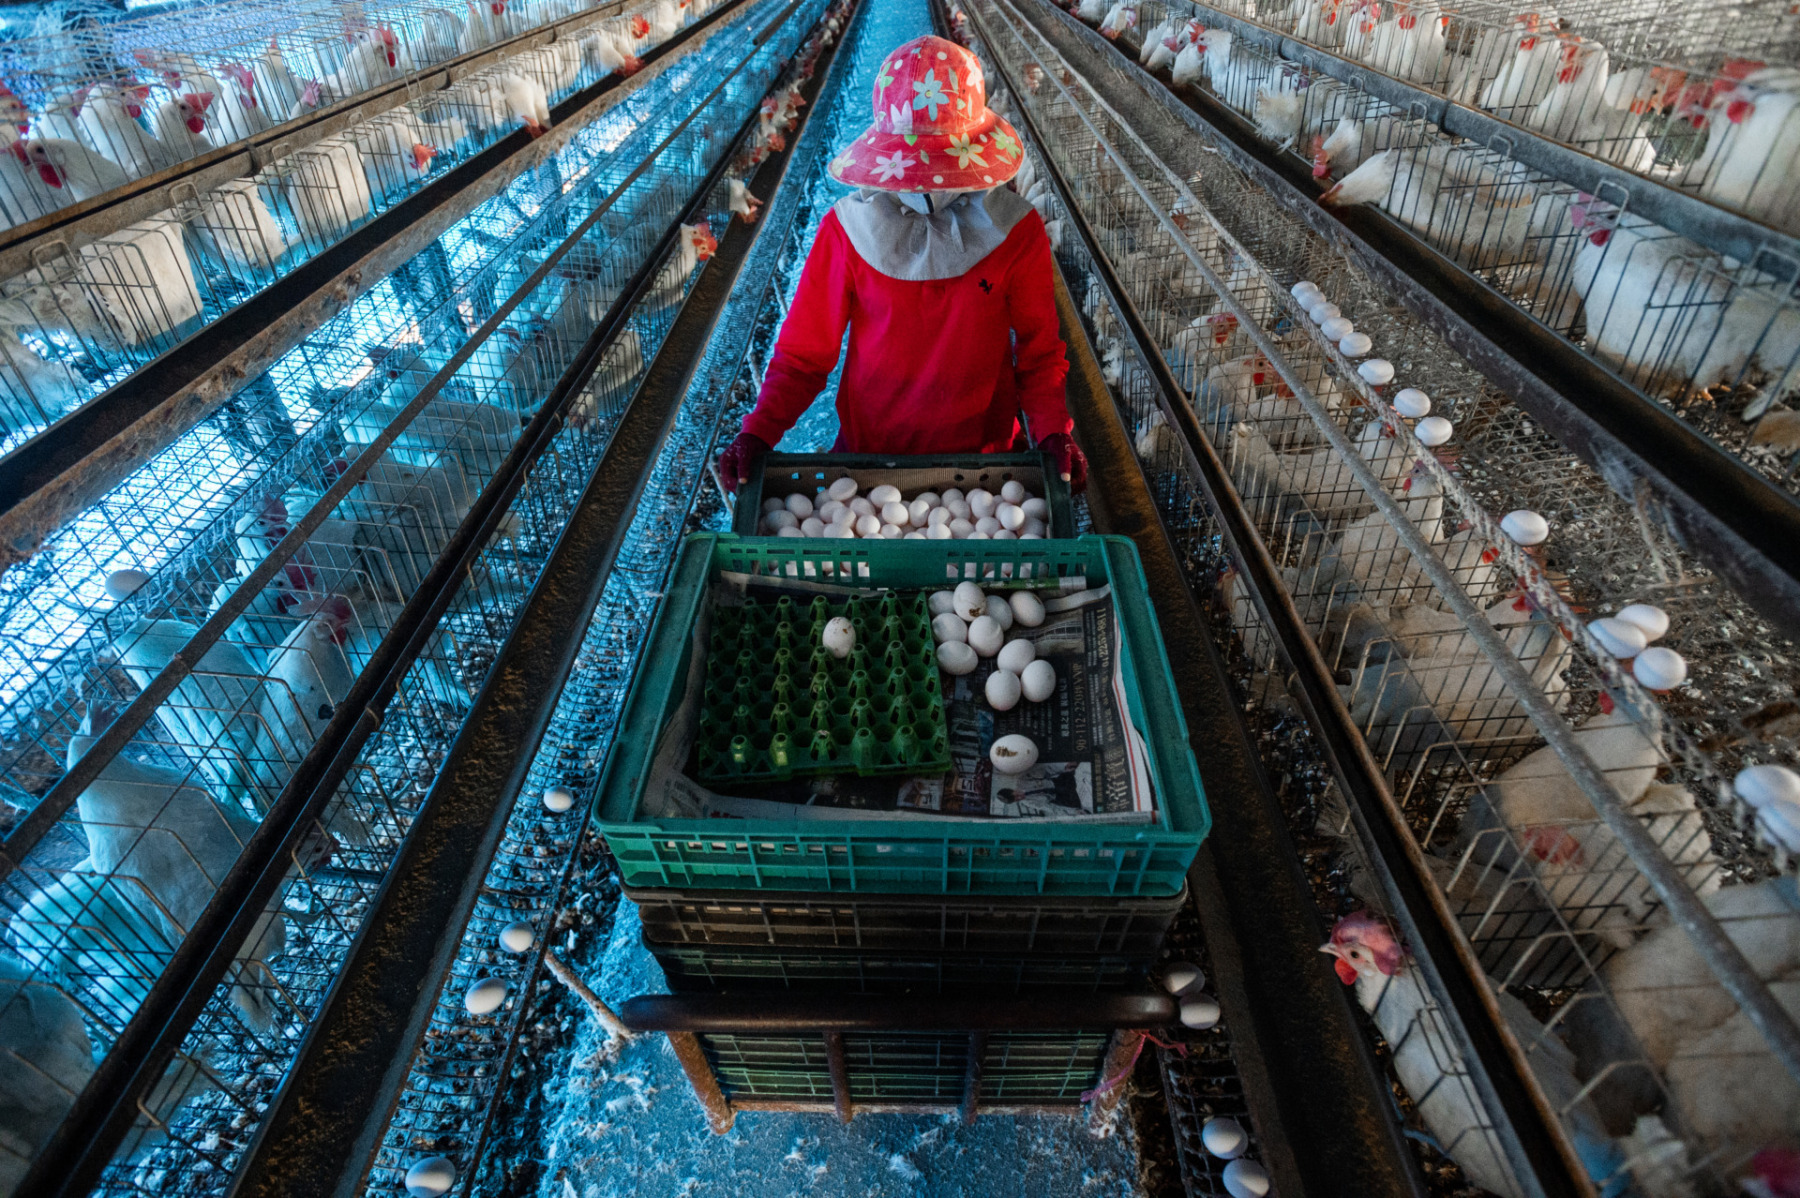 Collecting eggs from layer hens on an intensive poultry farm. Taiwan. Jo-Anne McArthur